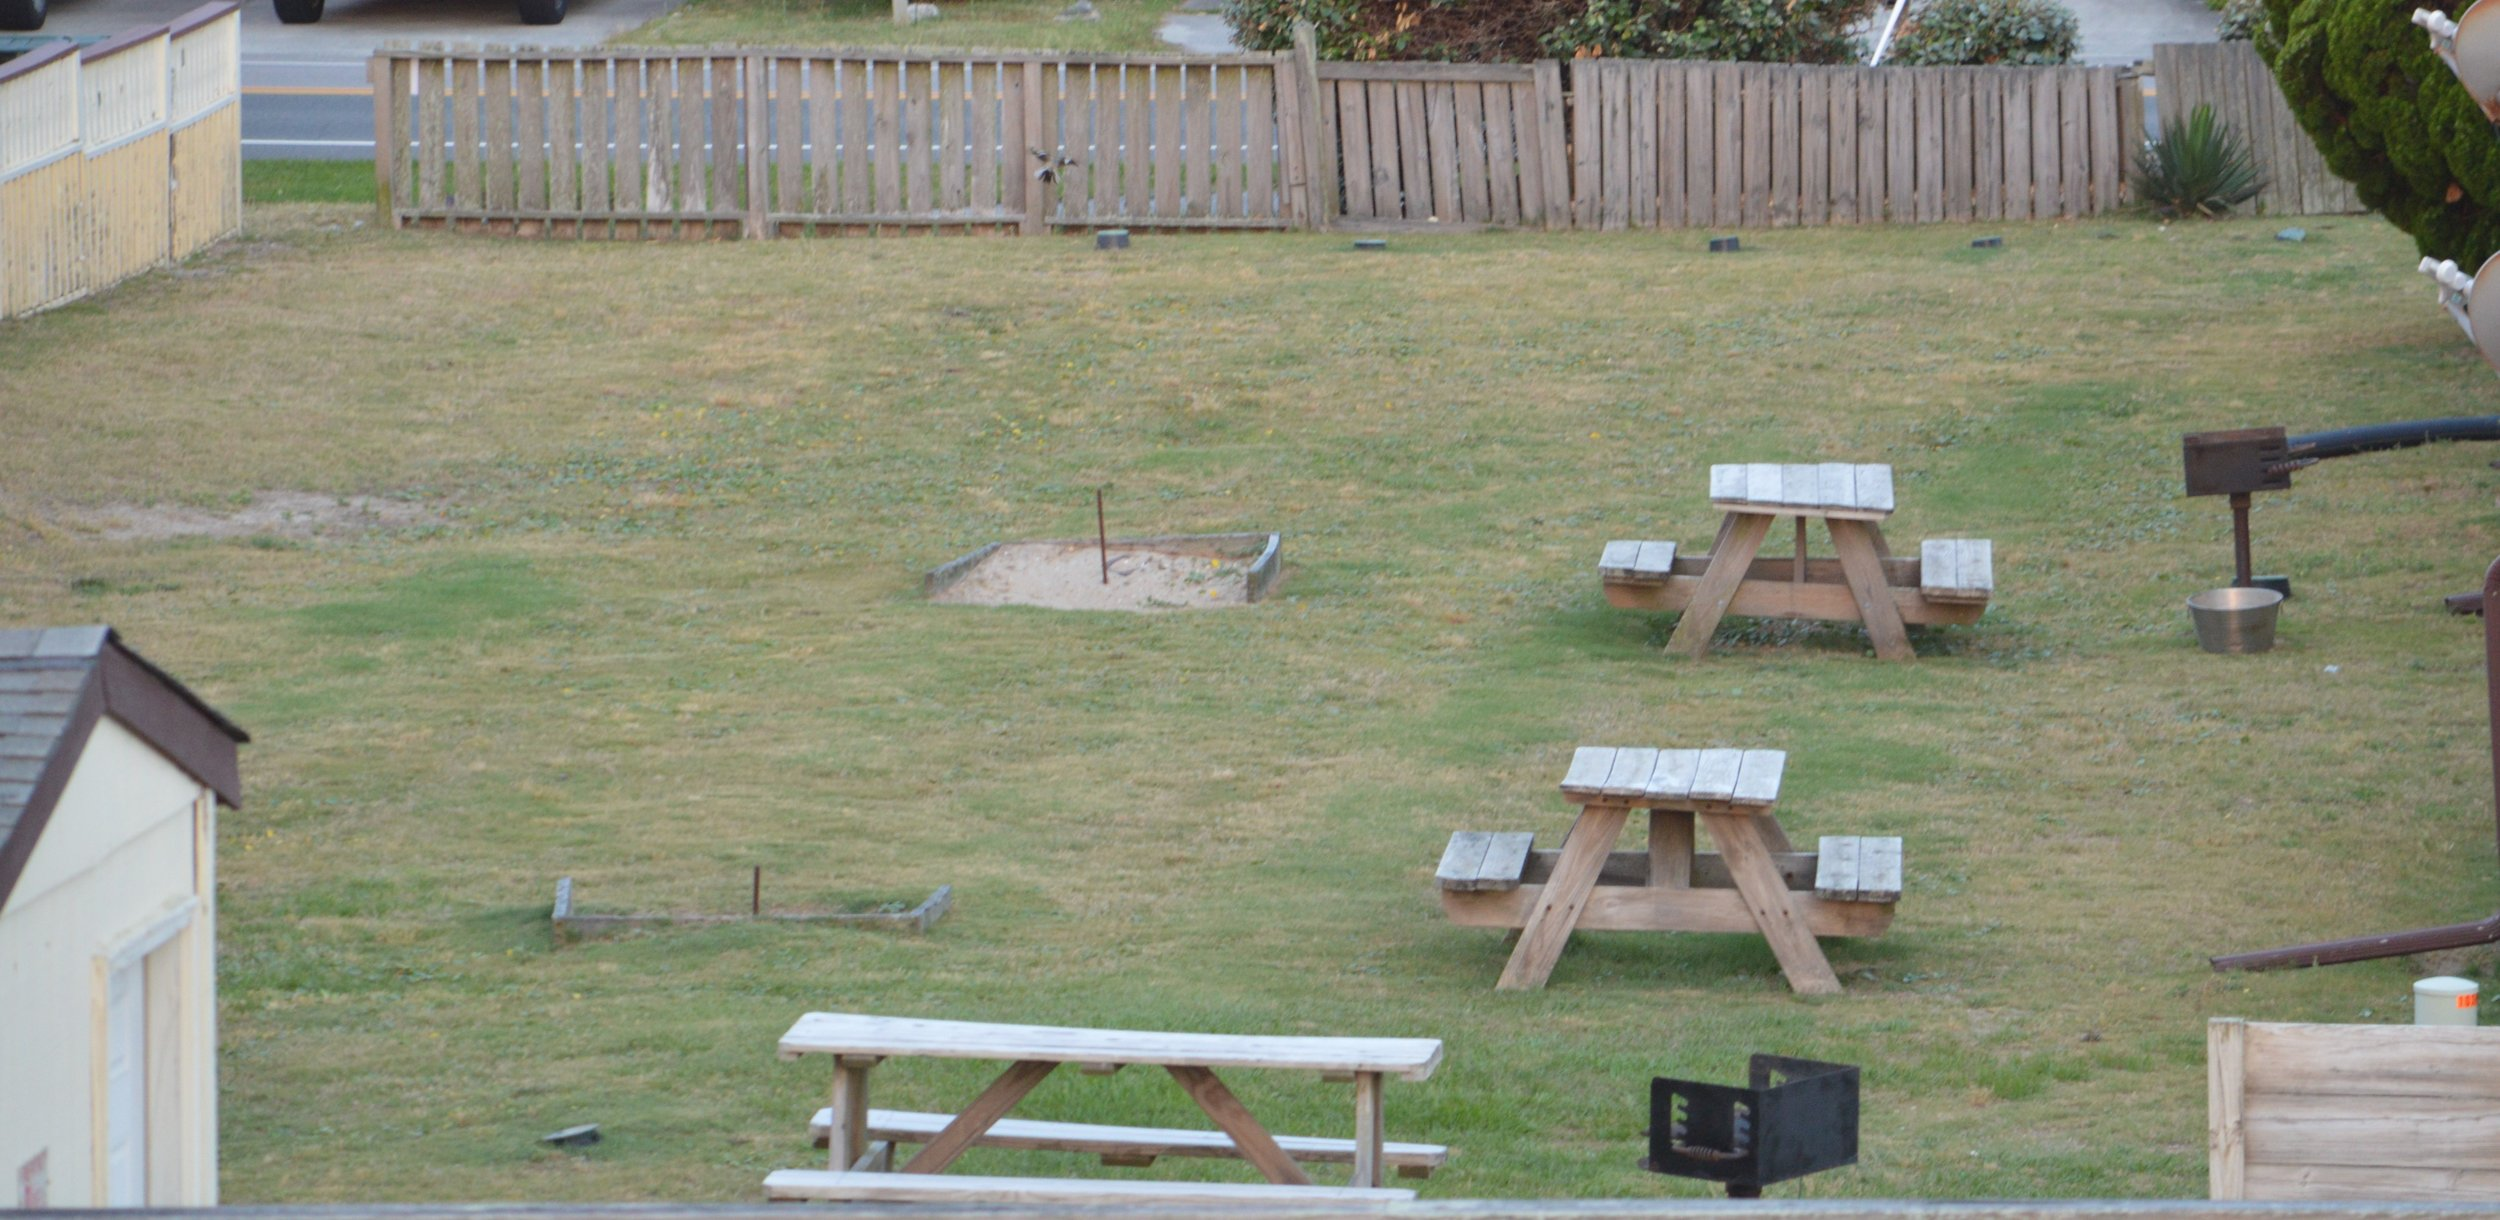 Horseshoe pits, area to play cornhole, grilling and picnic tables located adjacent Villa's 7 & 9